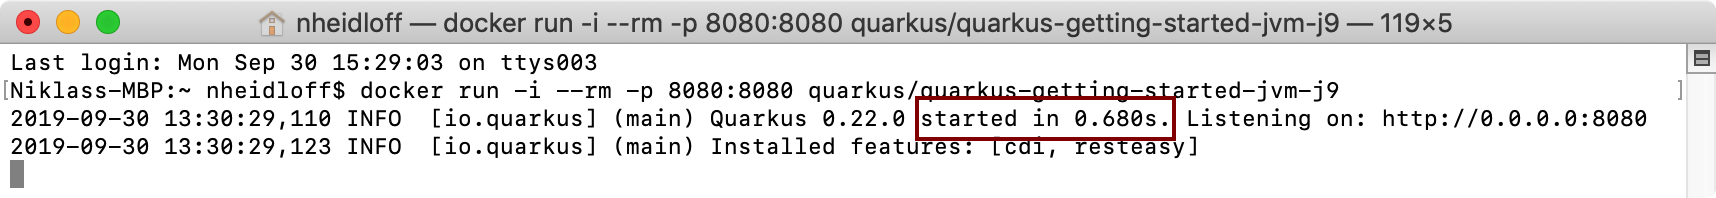 Quarkus app starts in around .7 seconds